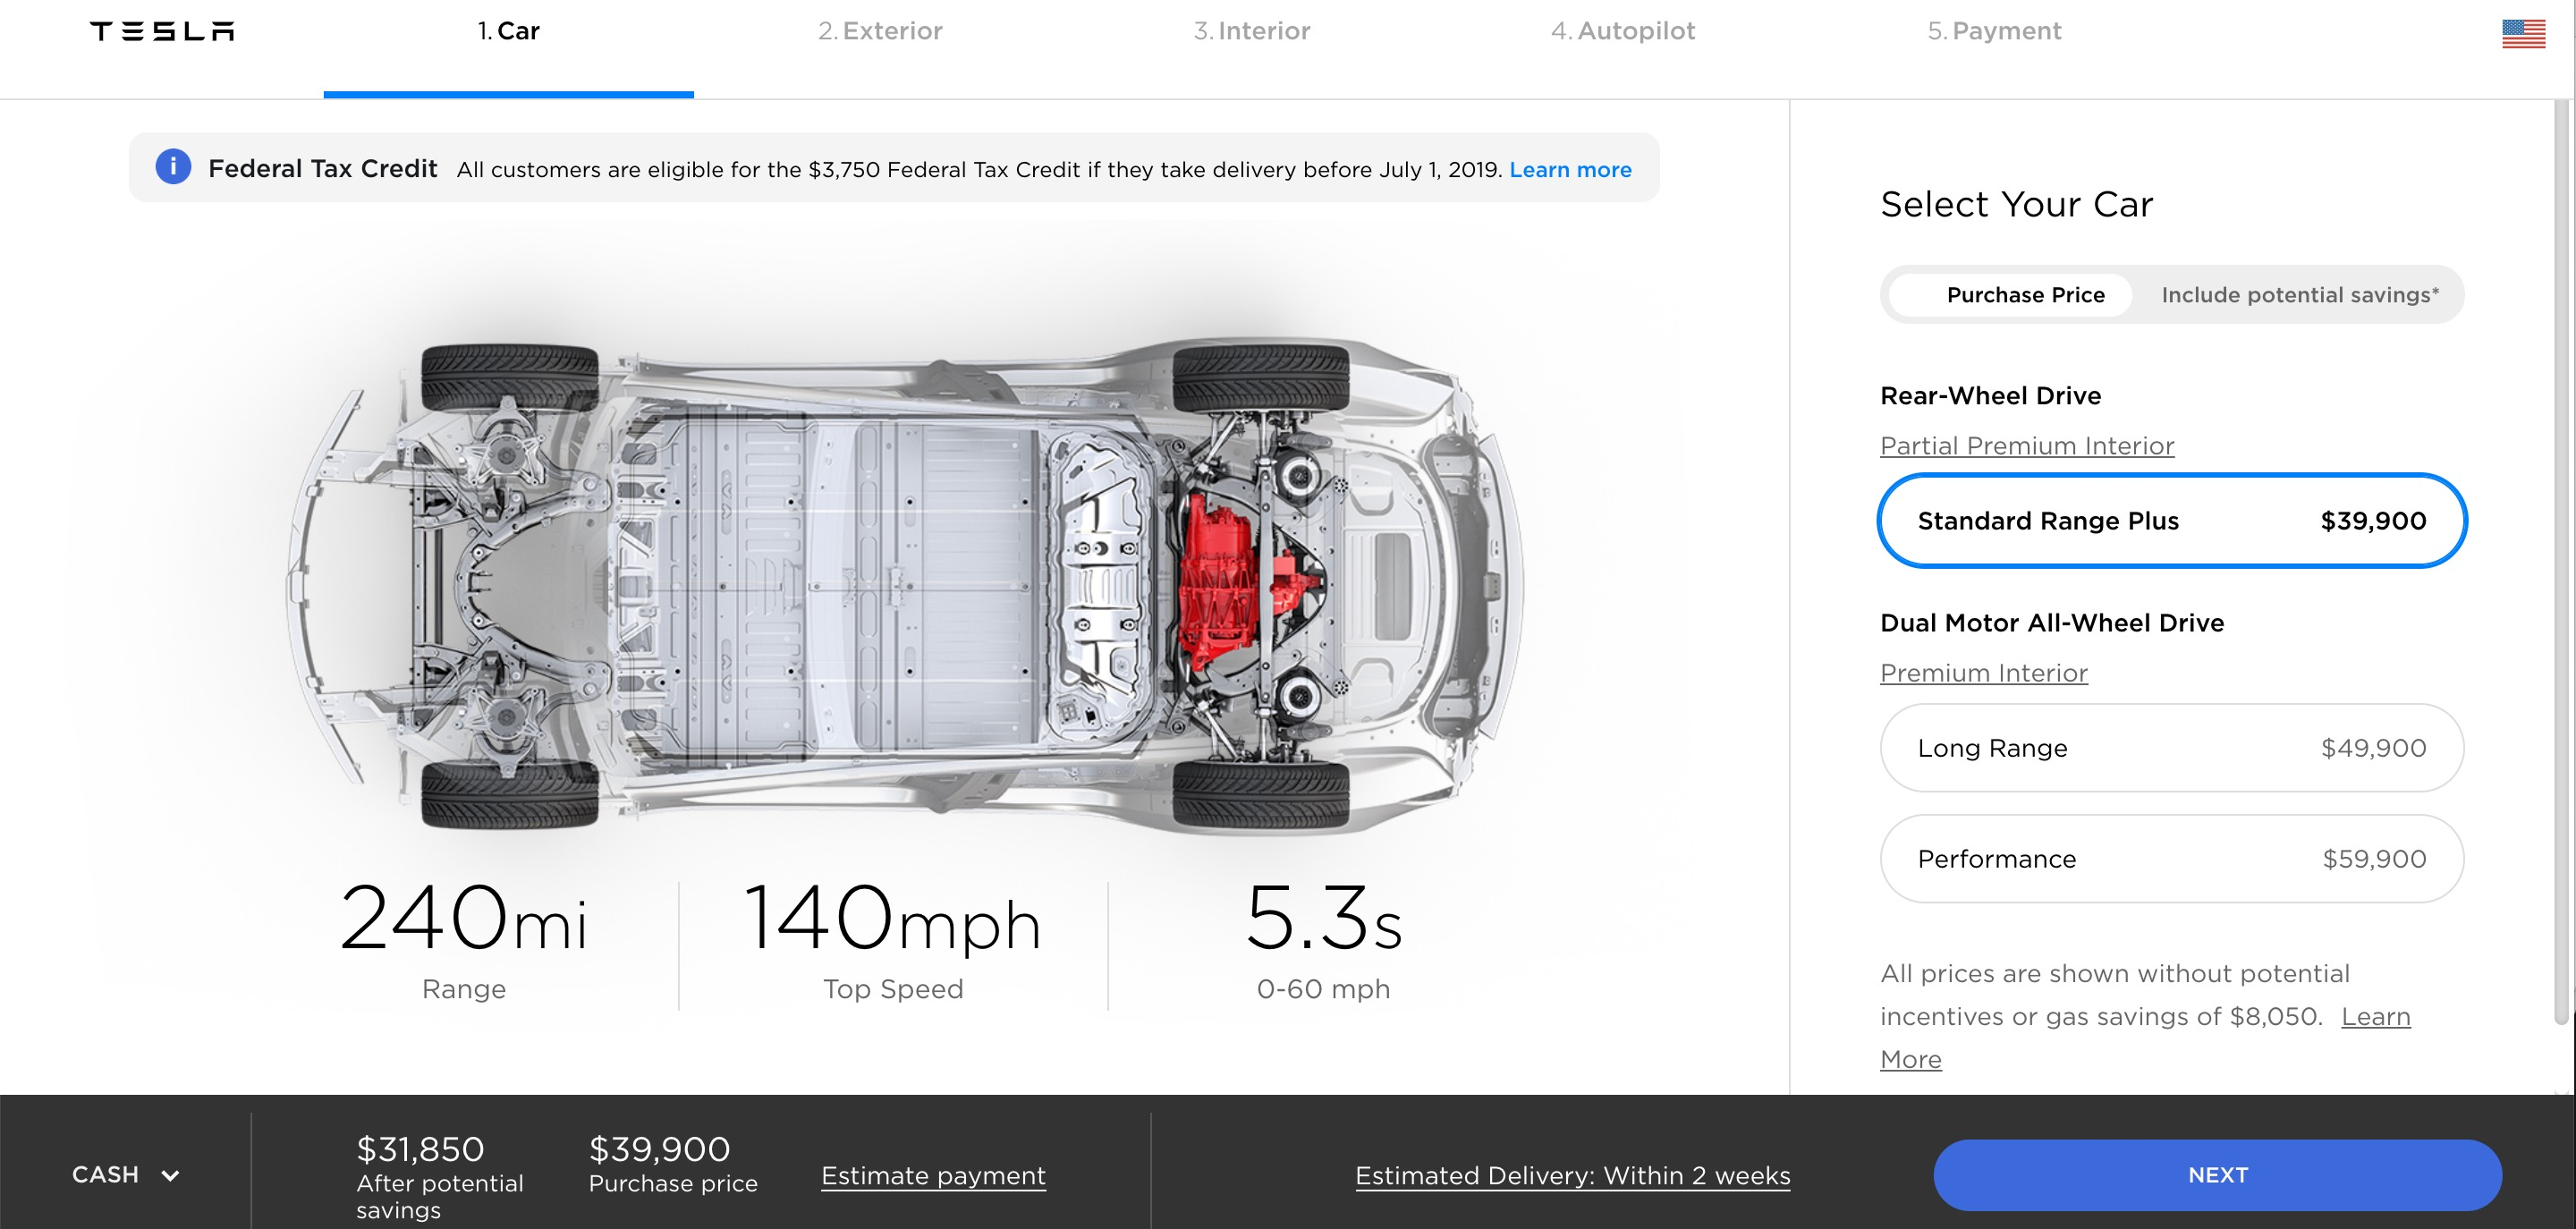 Tesla updates design studio to be more transparent about pricing | Electrek